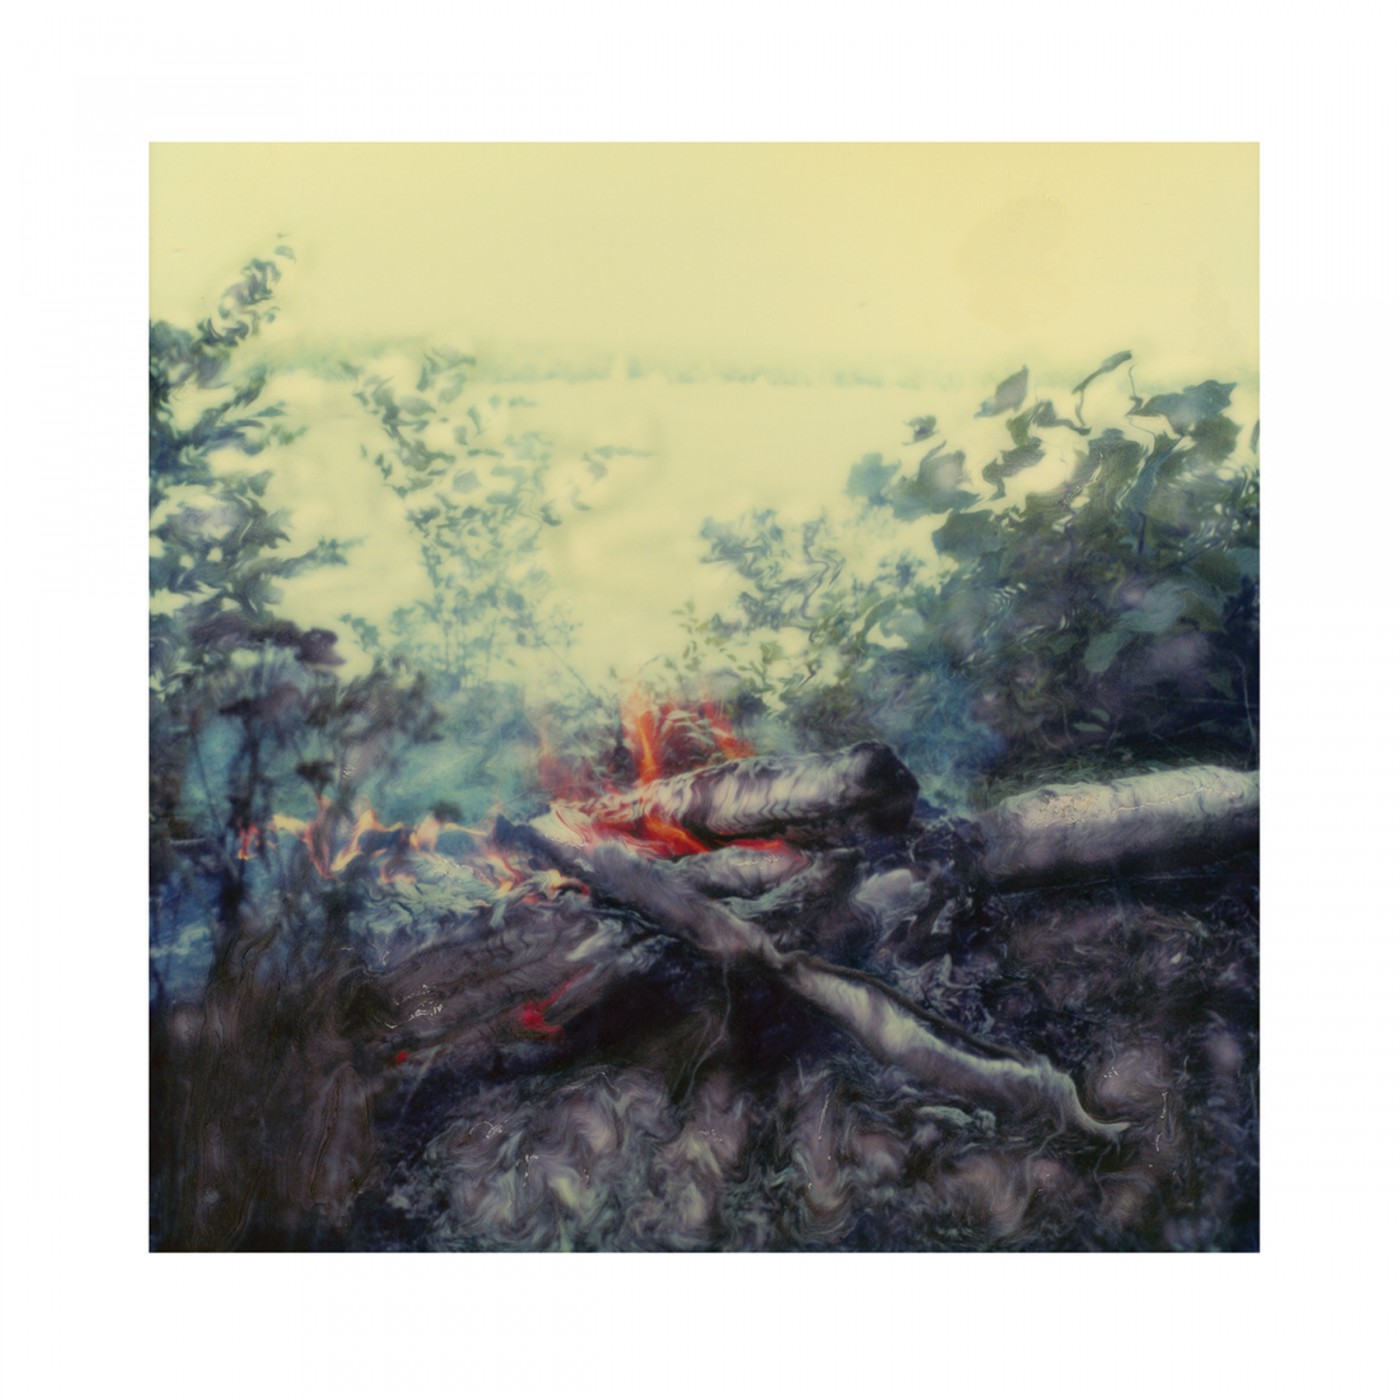 LOUISE VEZINA, </span><span><em>BRUSH FIRE &amp;amp; LAKE III, 2007</em>, </span><span>archival digital print 20x20